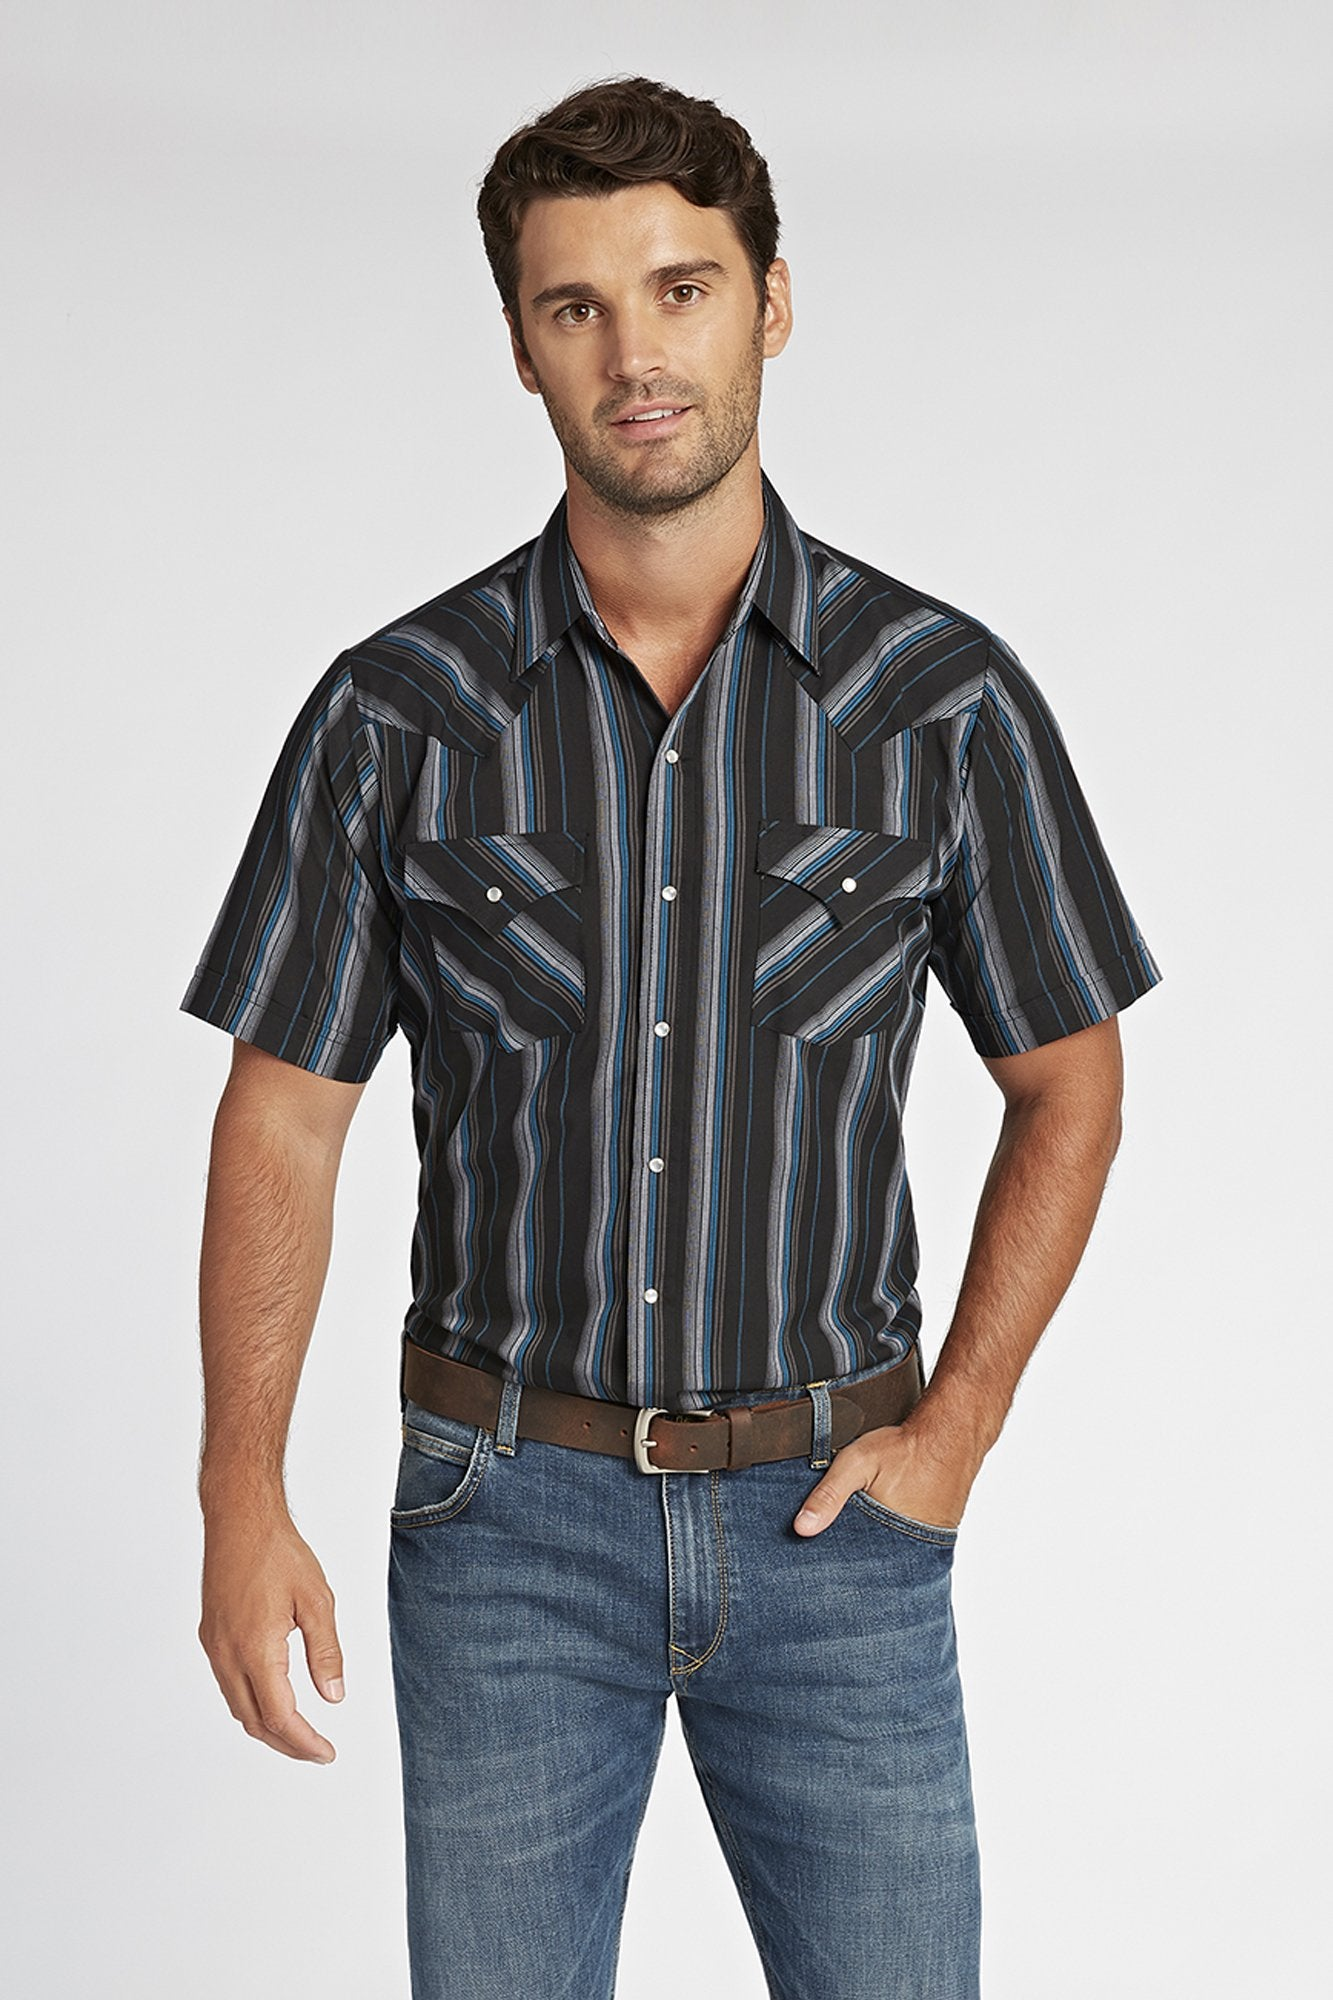 Short Sleeve Striped Shirt in Black Stripe | Ely Cattleman